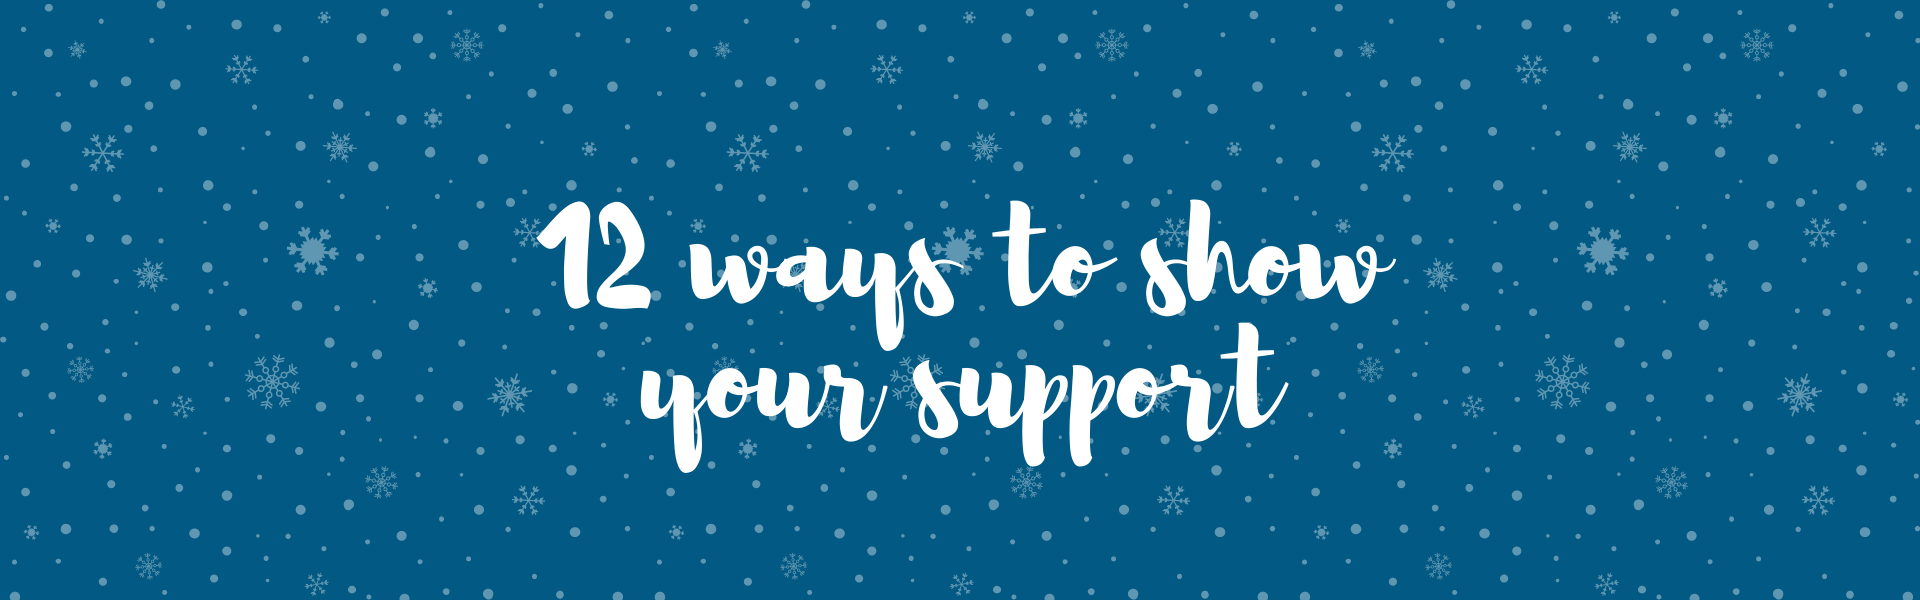 12-ways-to-show-your-support-this-christmas